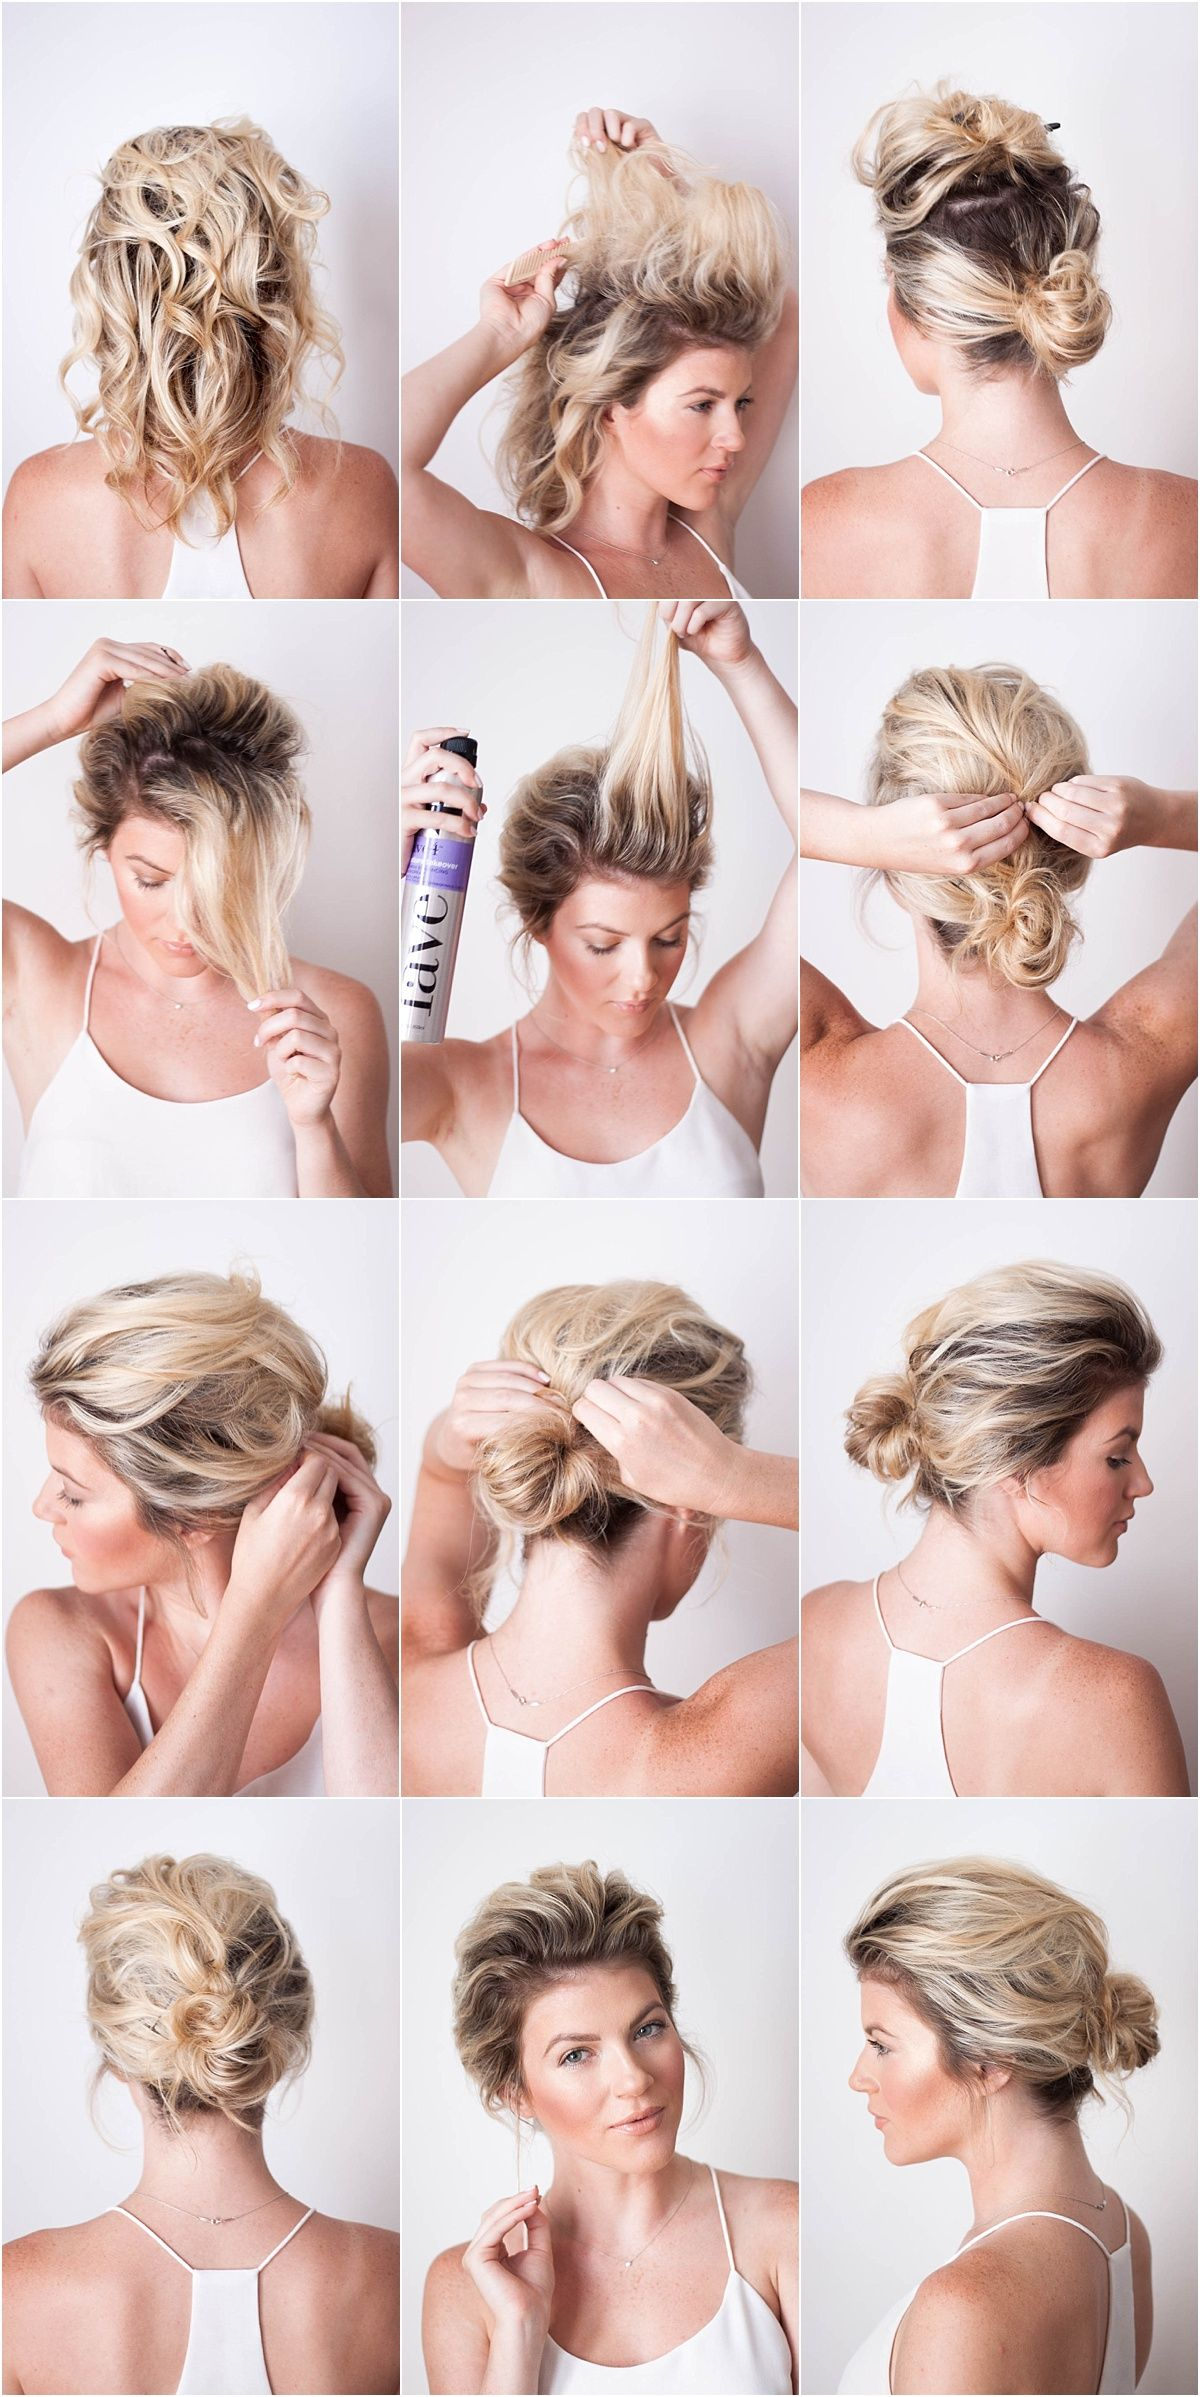 Sunkissed And Made Up Short Hair Updo Hair Styles Thin Hair Updo